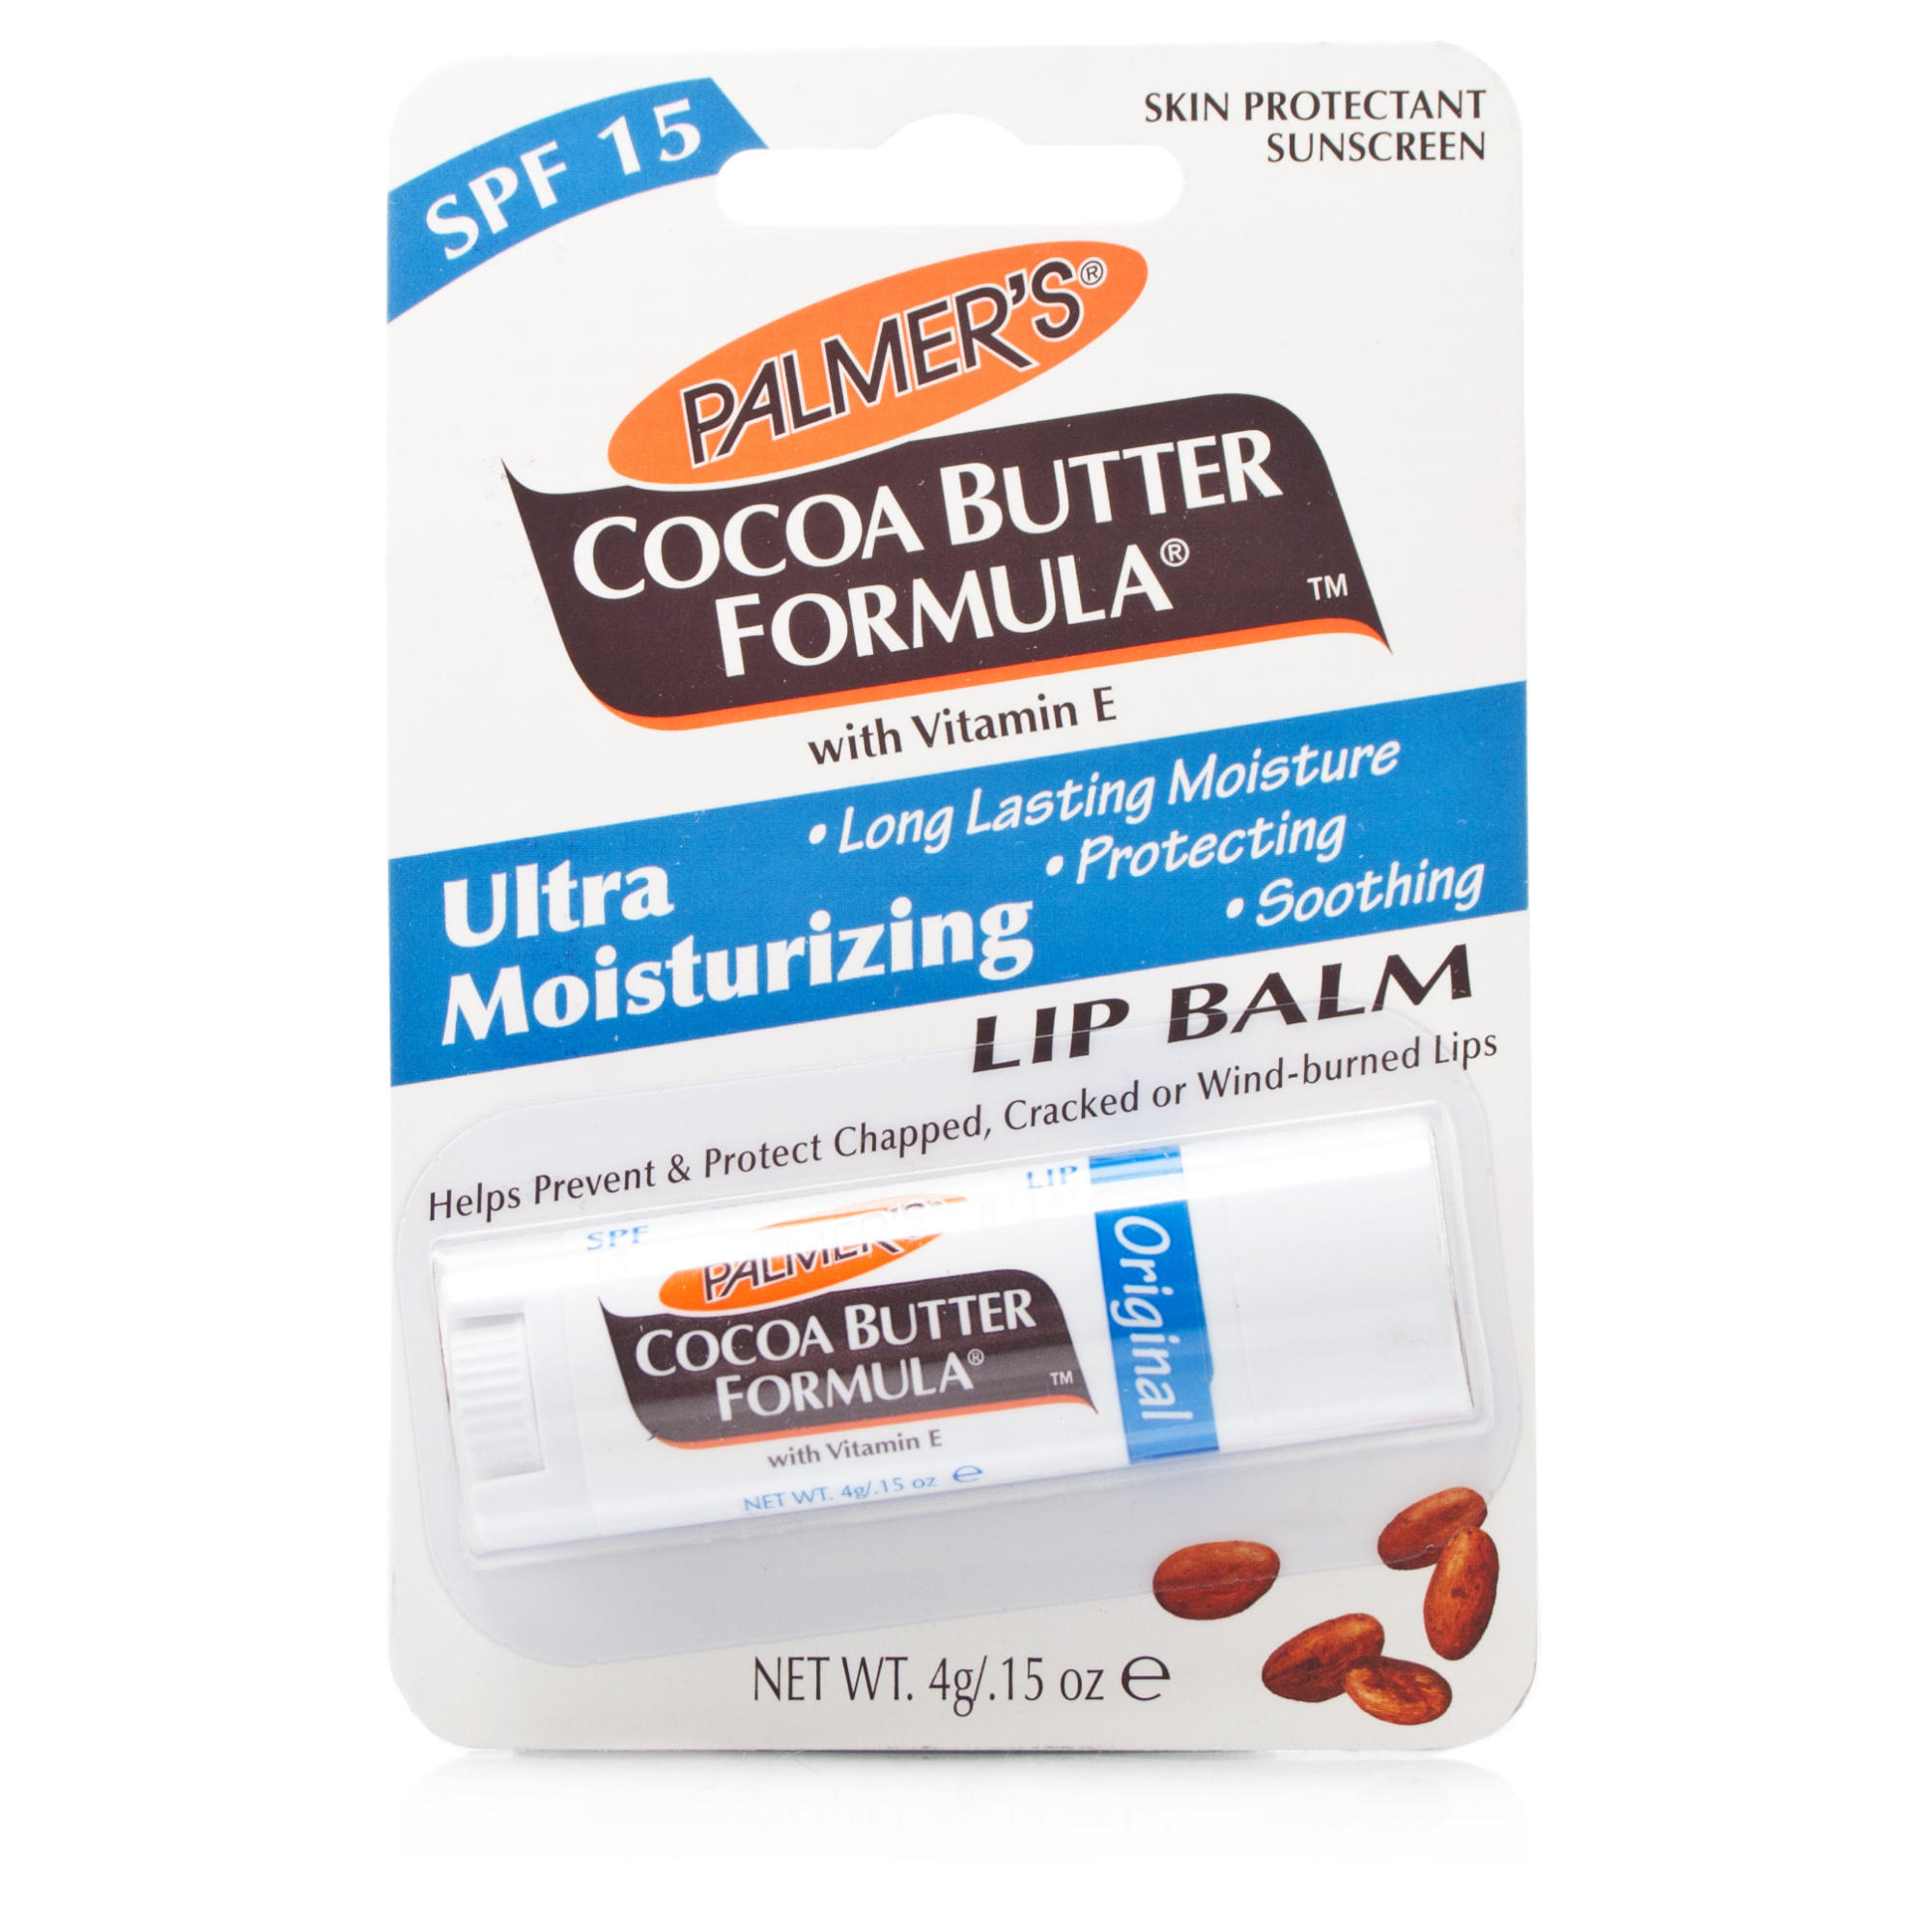 Palmers cocoa butter lip balm review